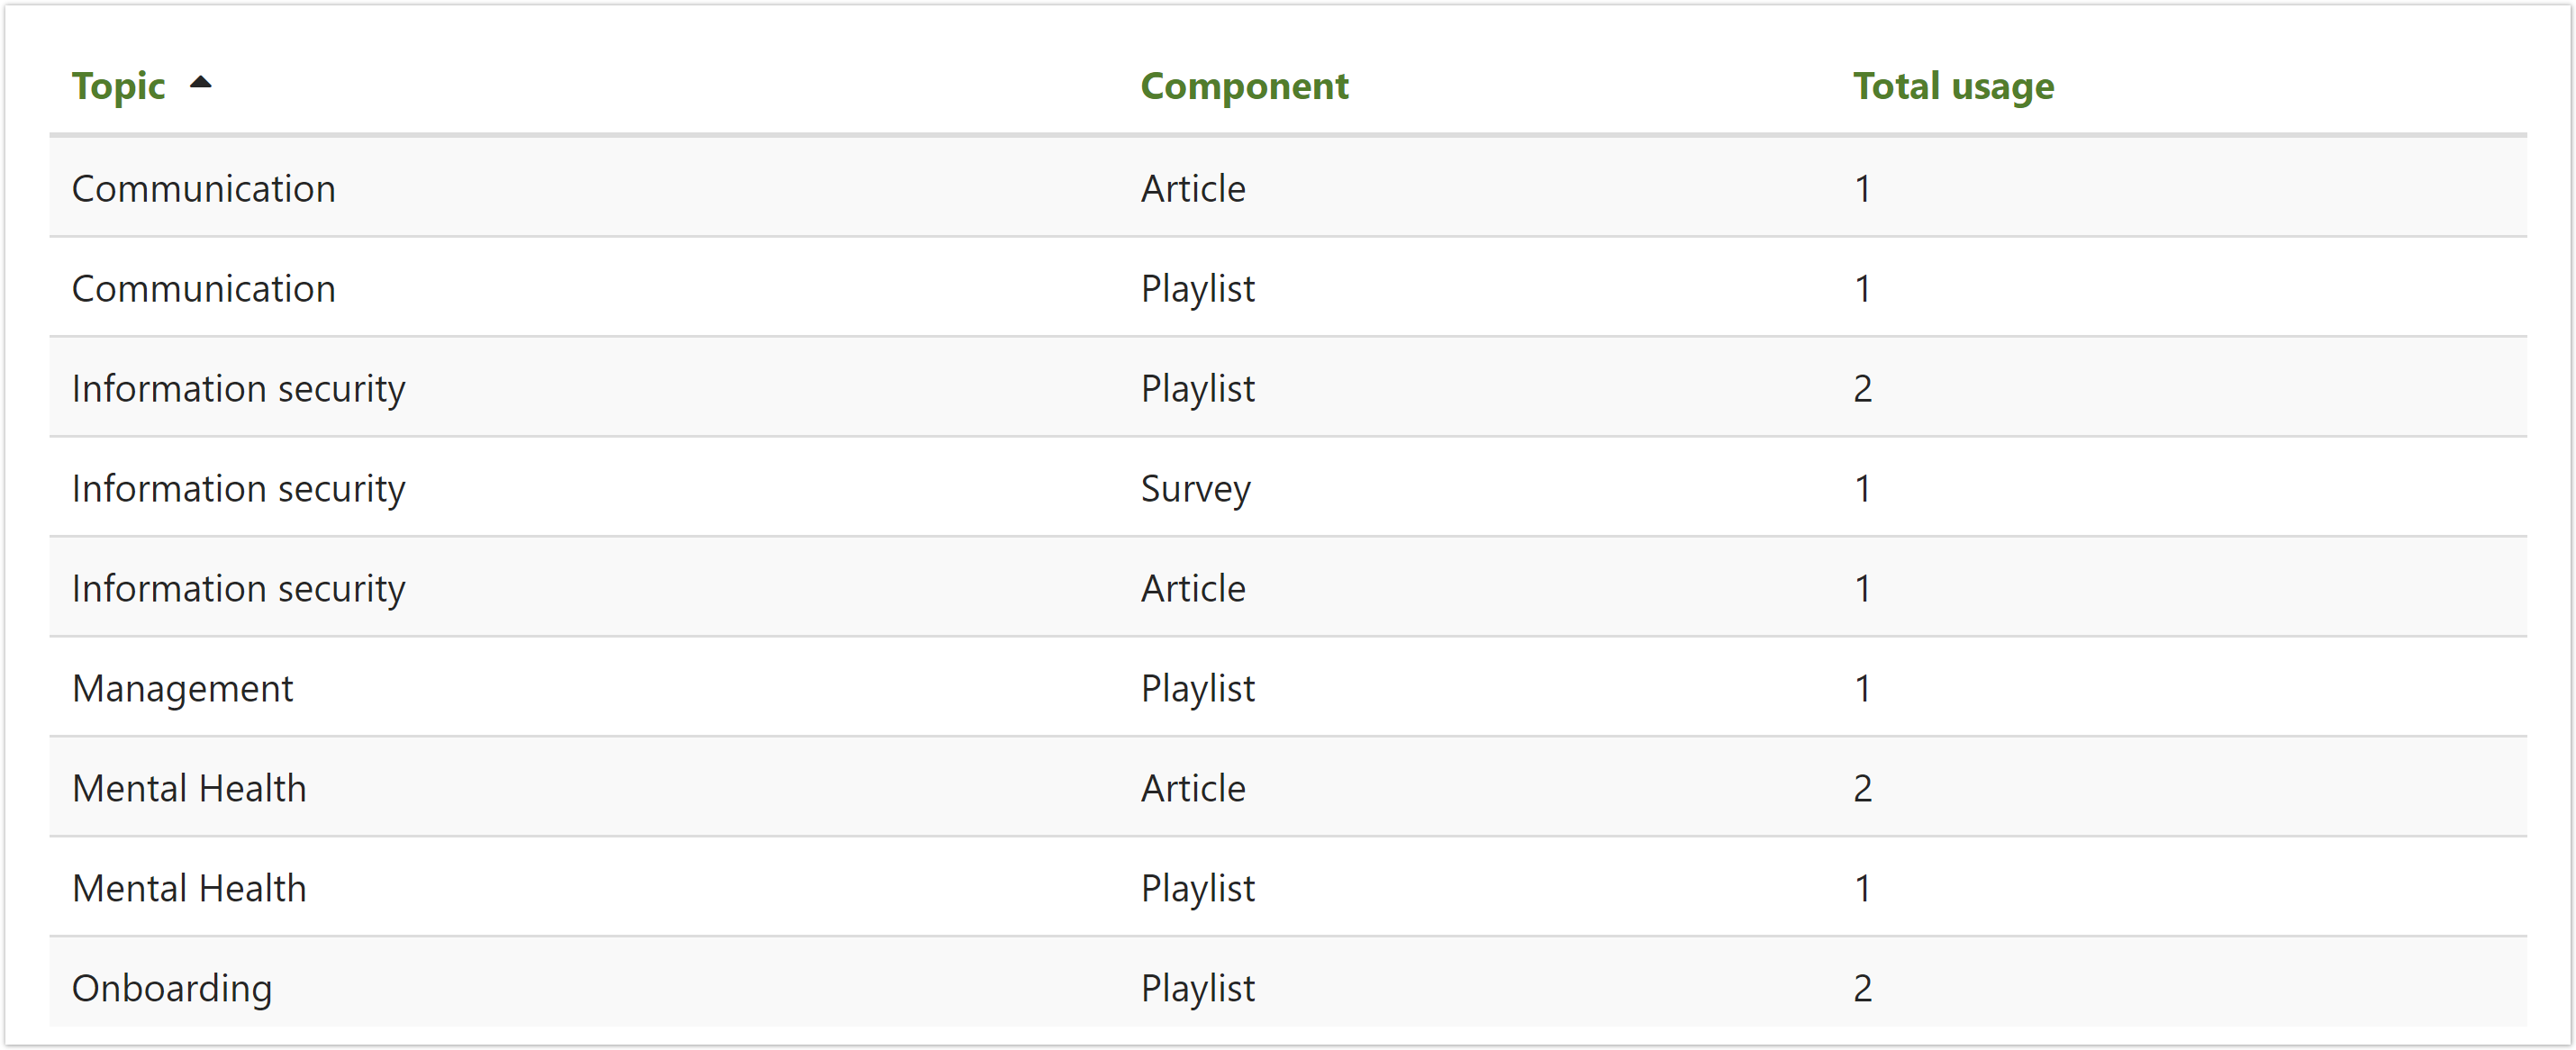 The usage of topics embedded report showing how many articles, surveys and playlists are assigned to each topic.